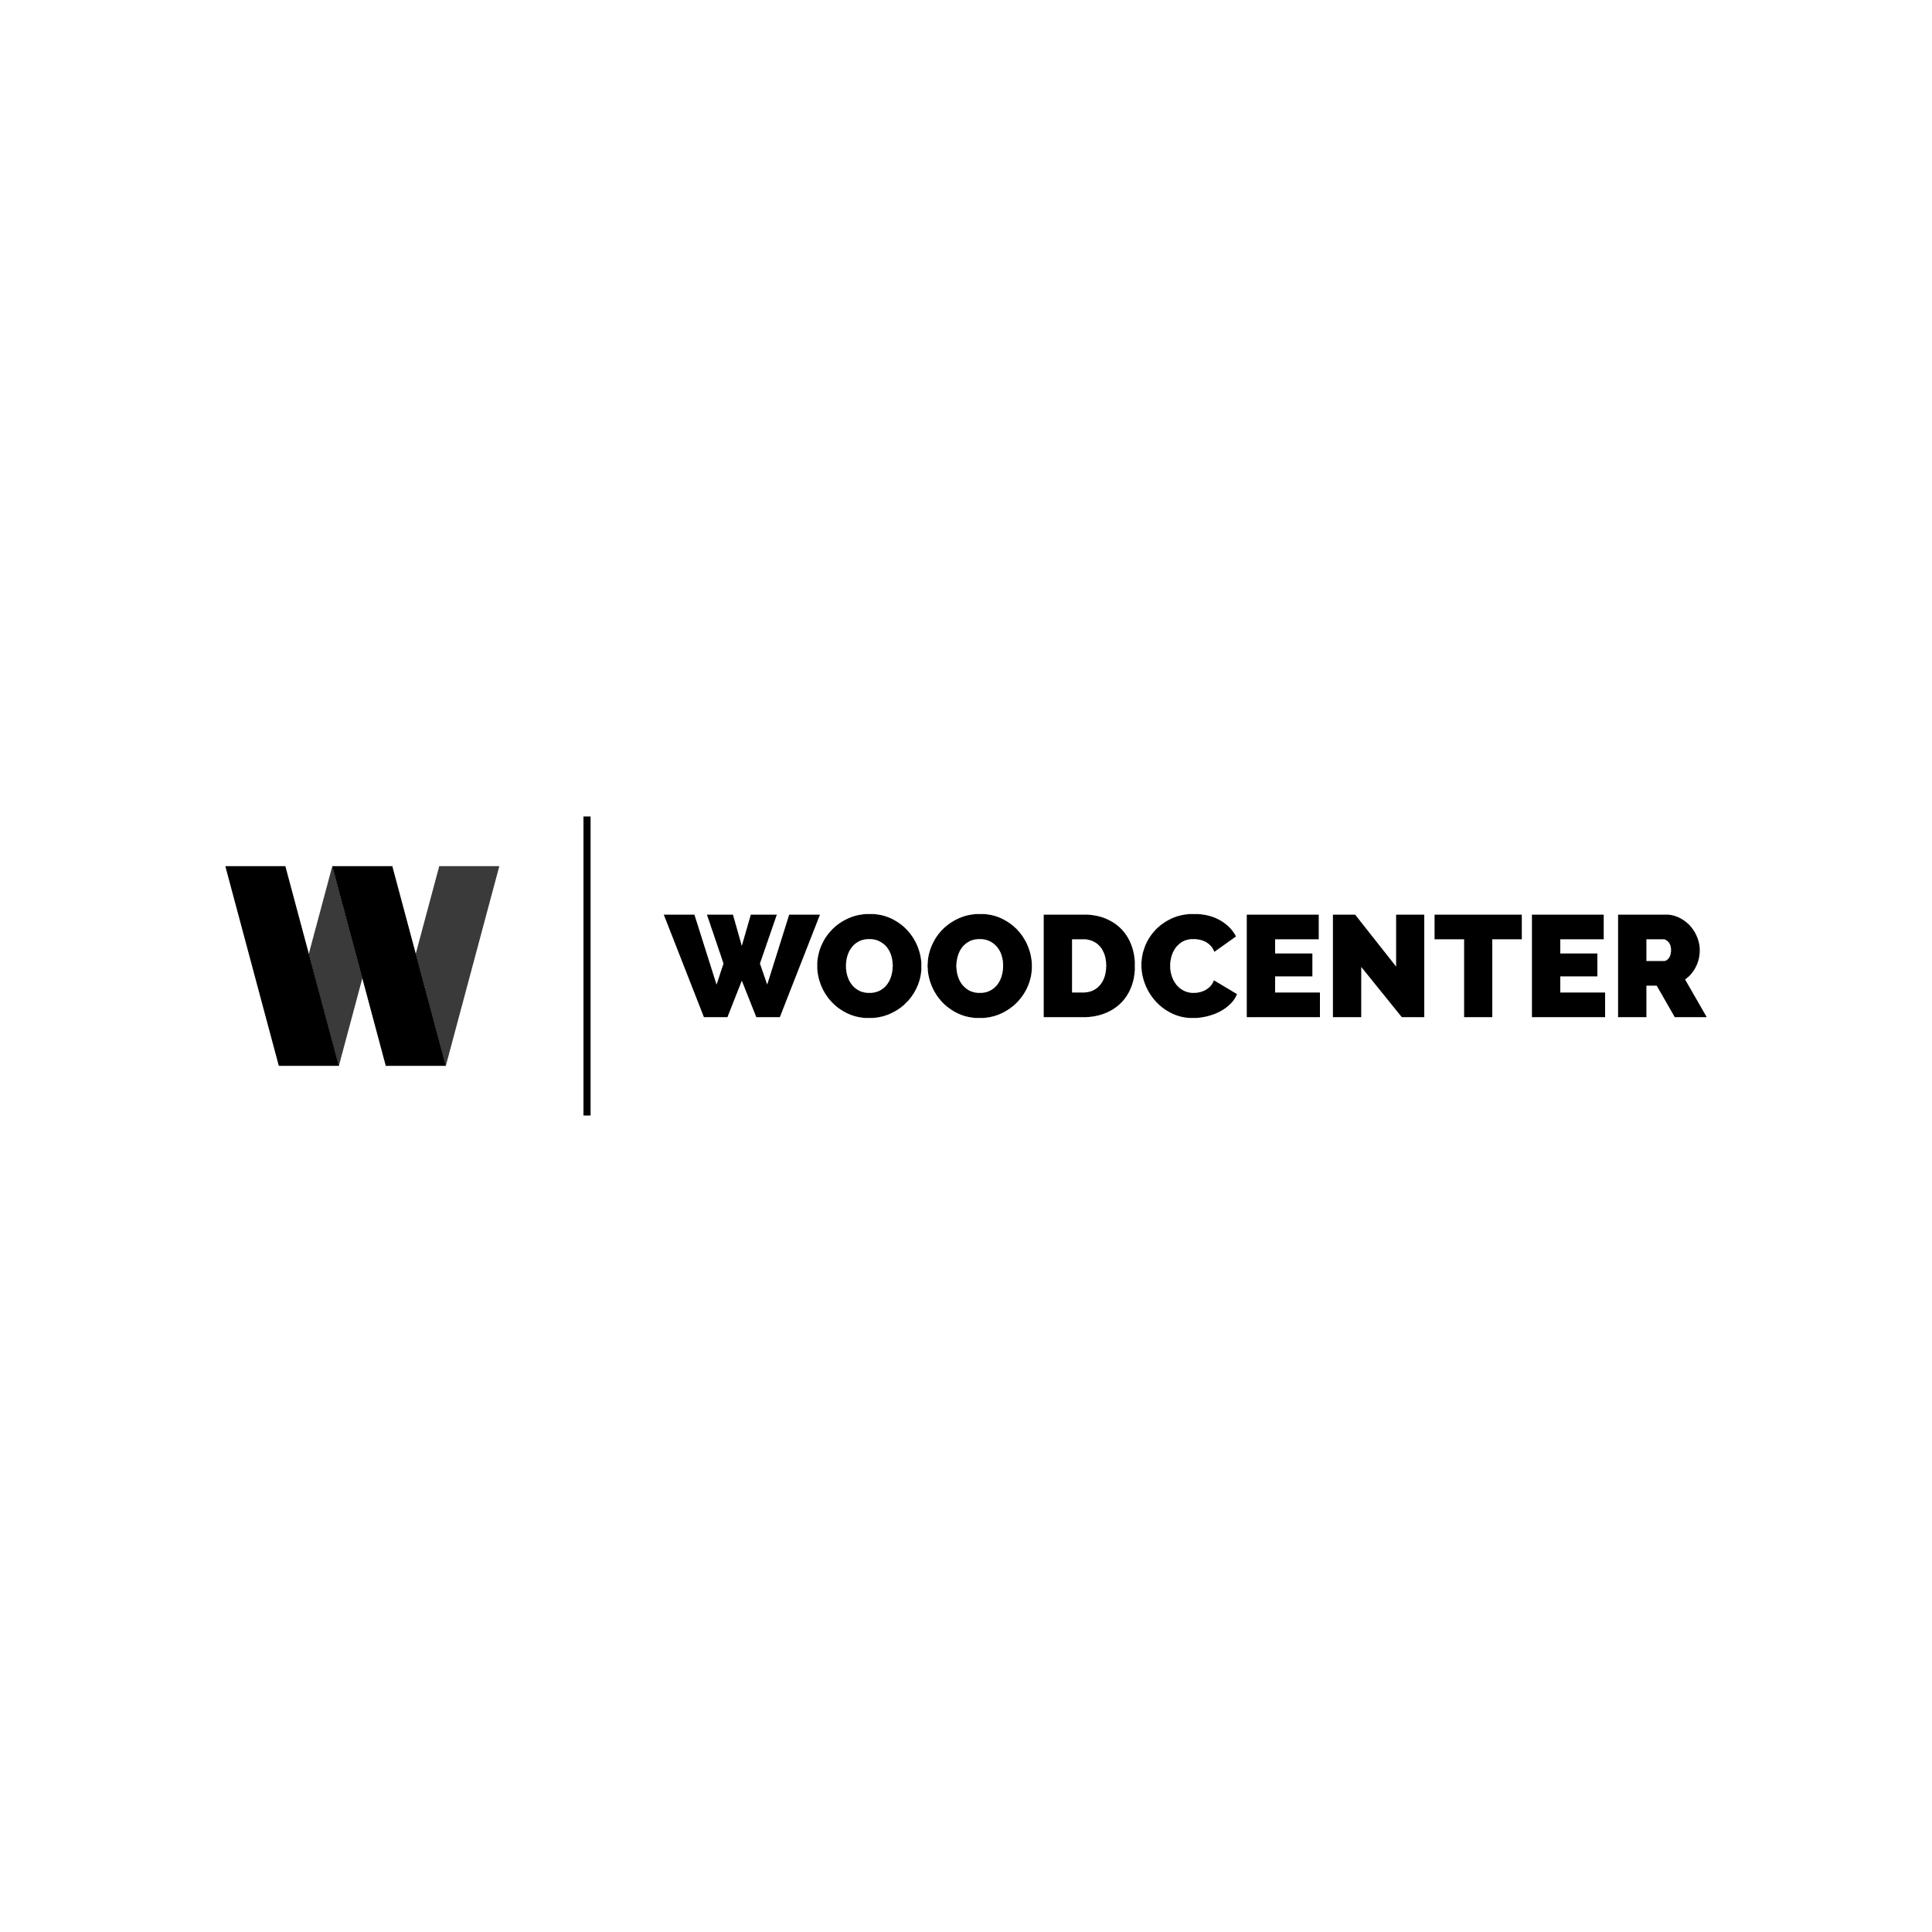 Woodcenter logo